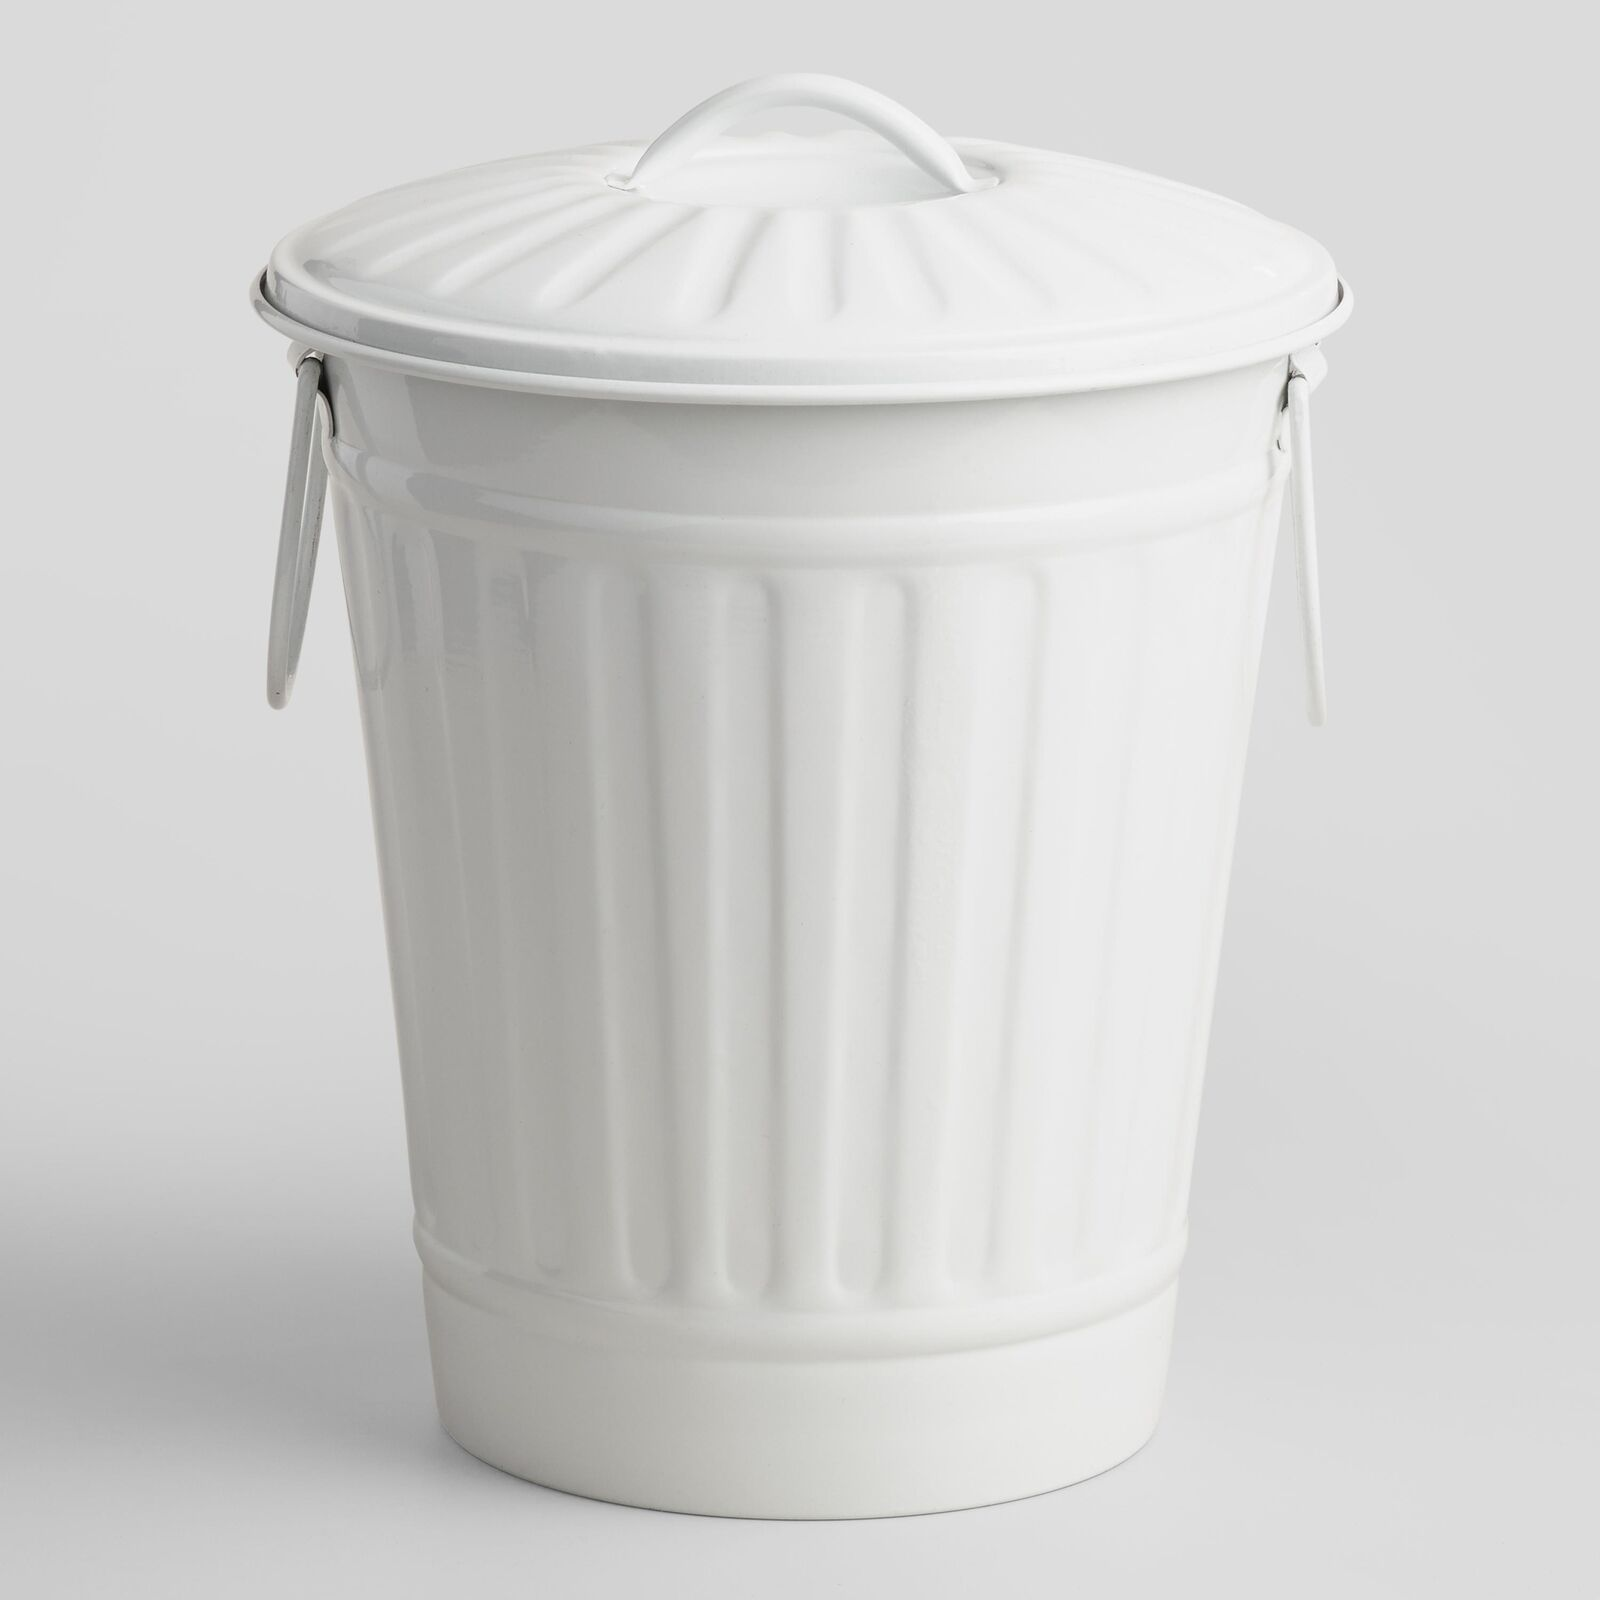 Small White Trash Can With Lid Small Retro White Galvanized Metal Trash Can Pail Bin Swing Handles Secure Lid